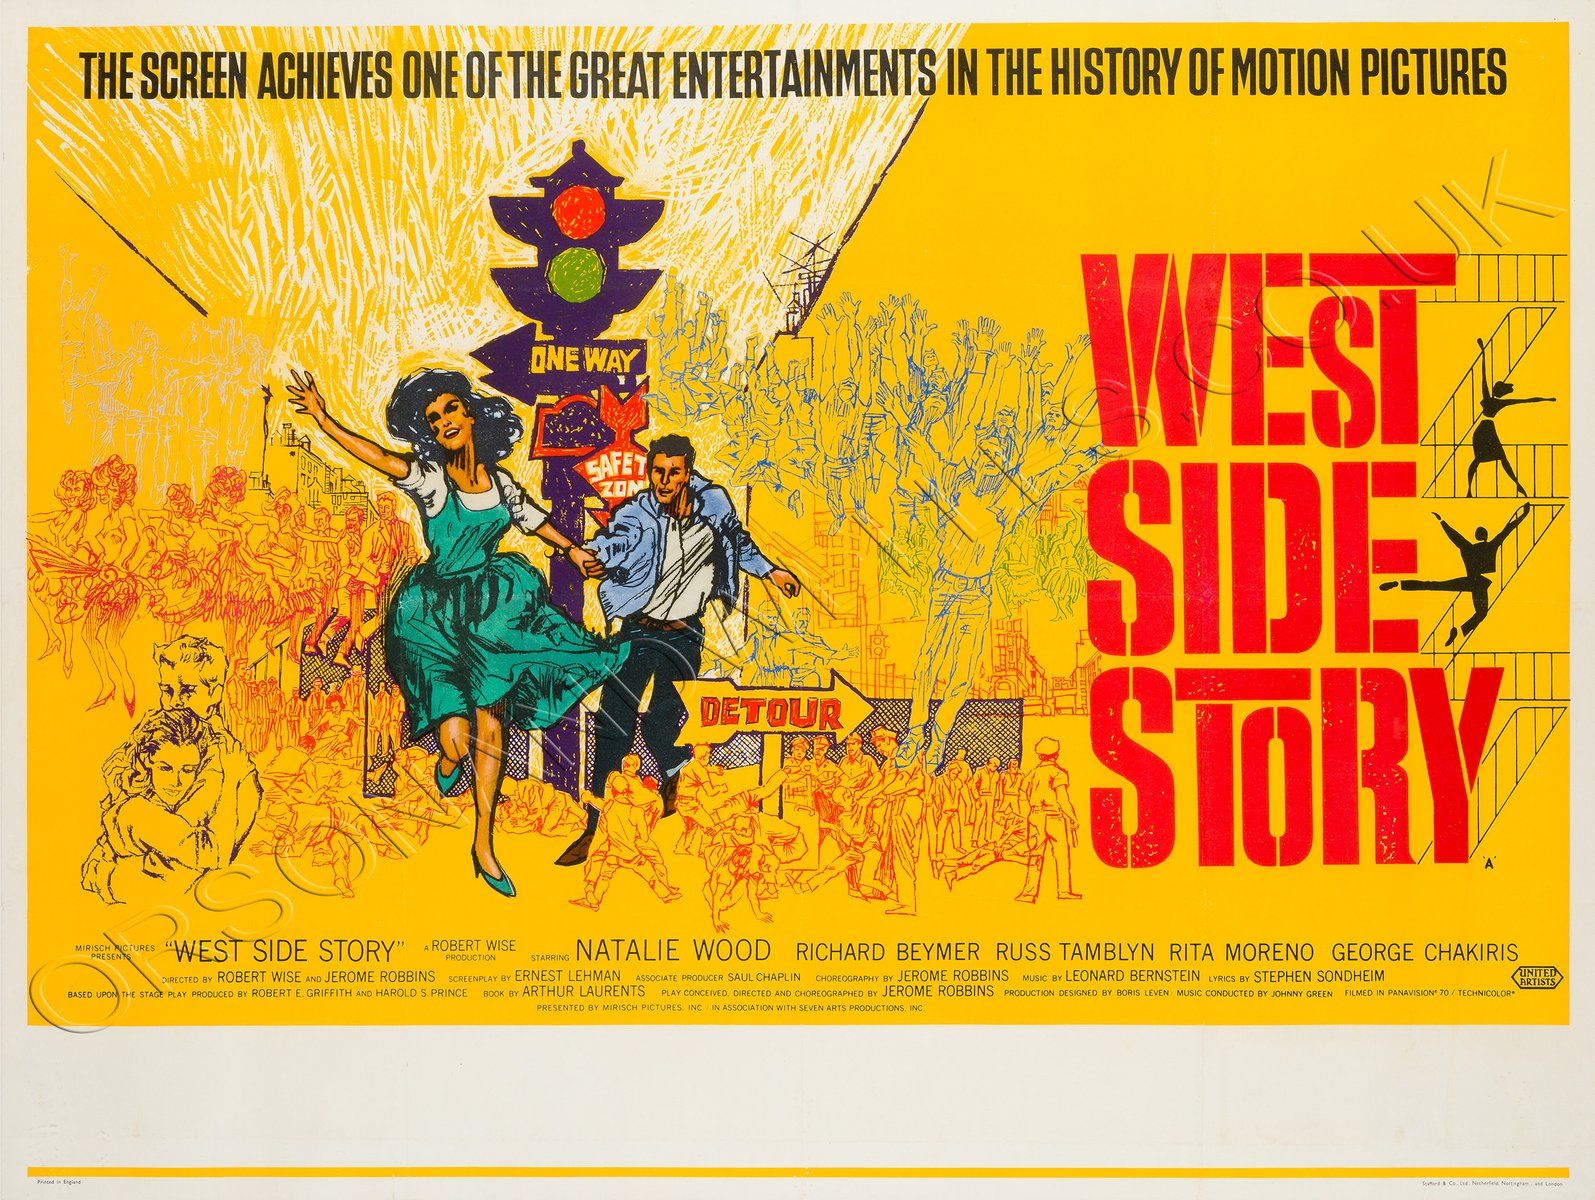 Vintage West Side Story Movie Poster, 1961 for sale at Pamono